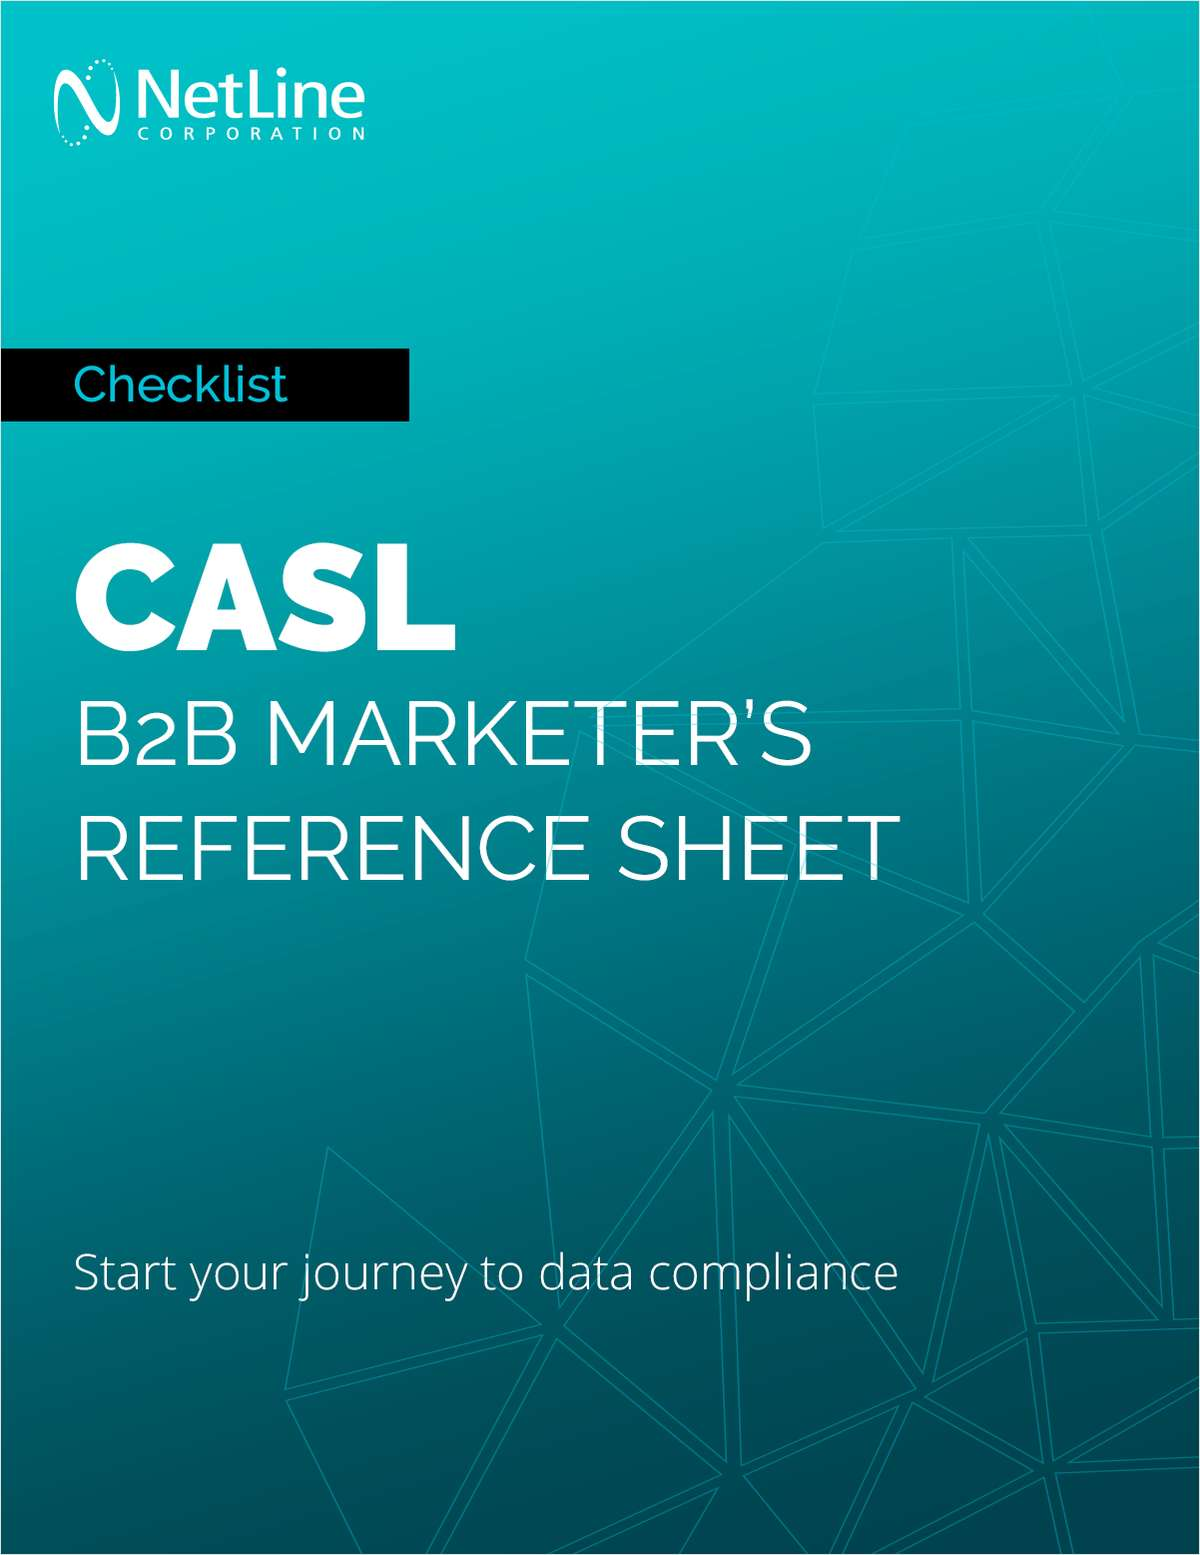 CASL: B2B Marketer's Reference Sheet